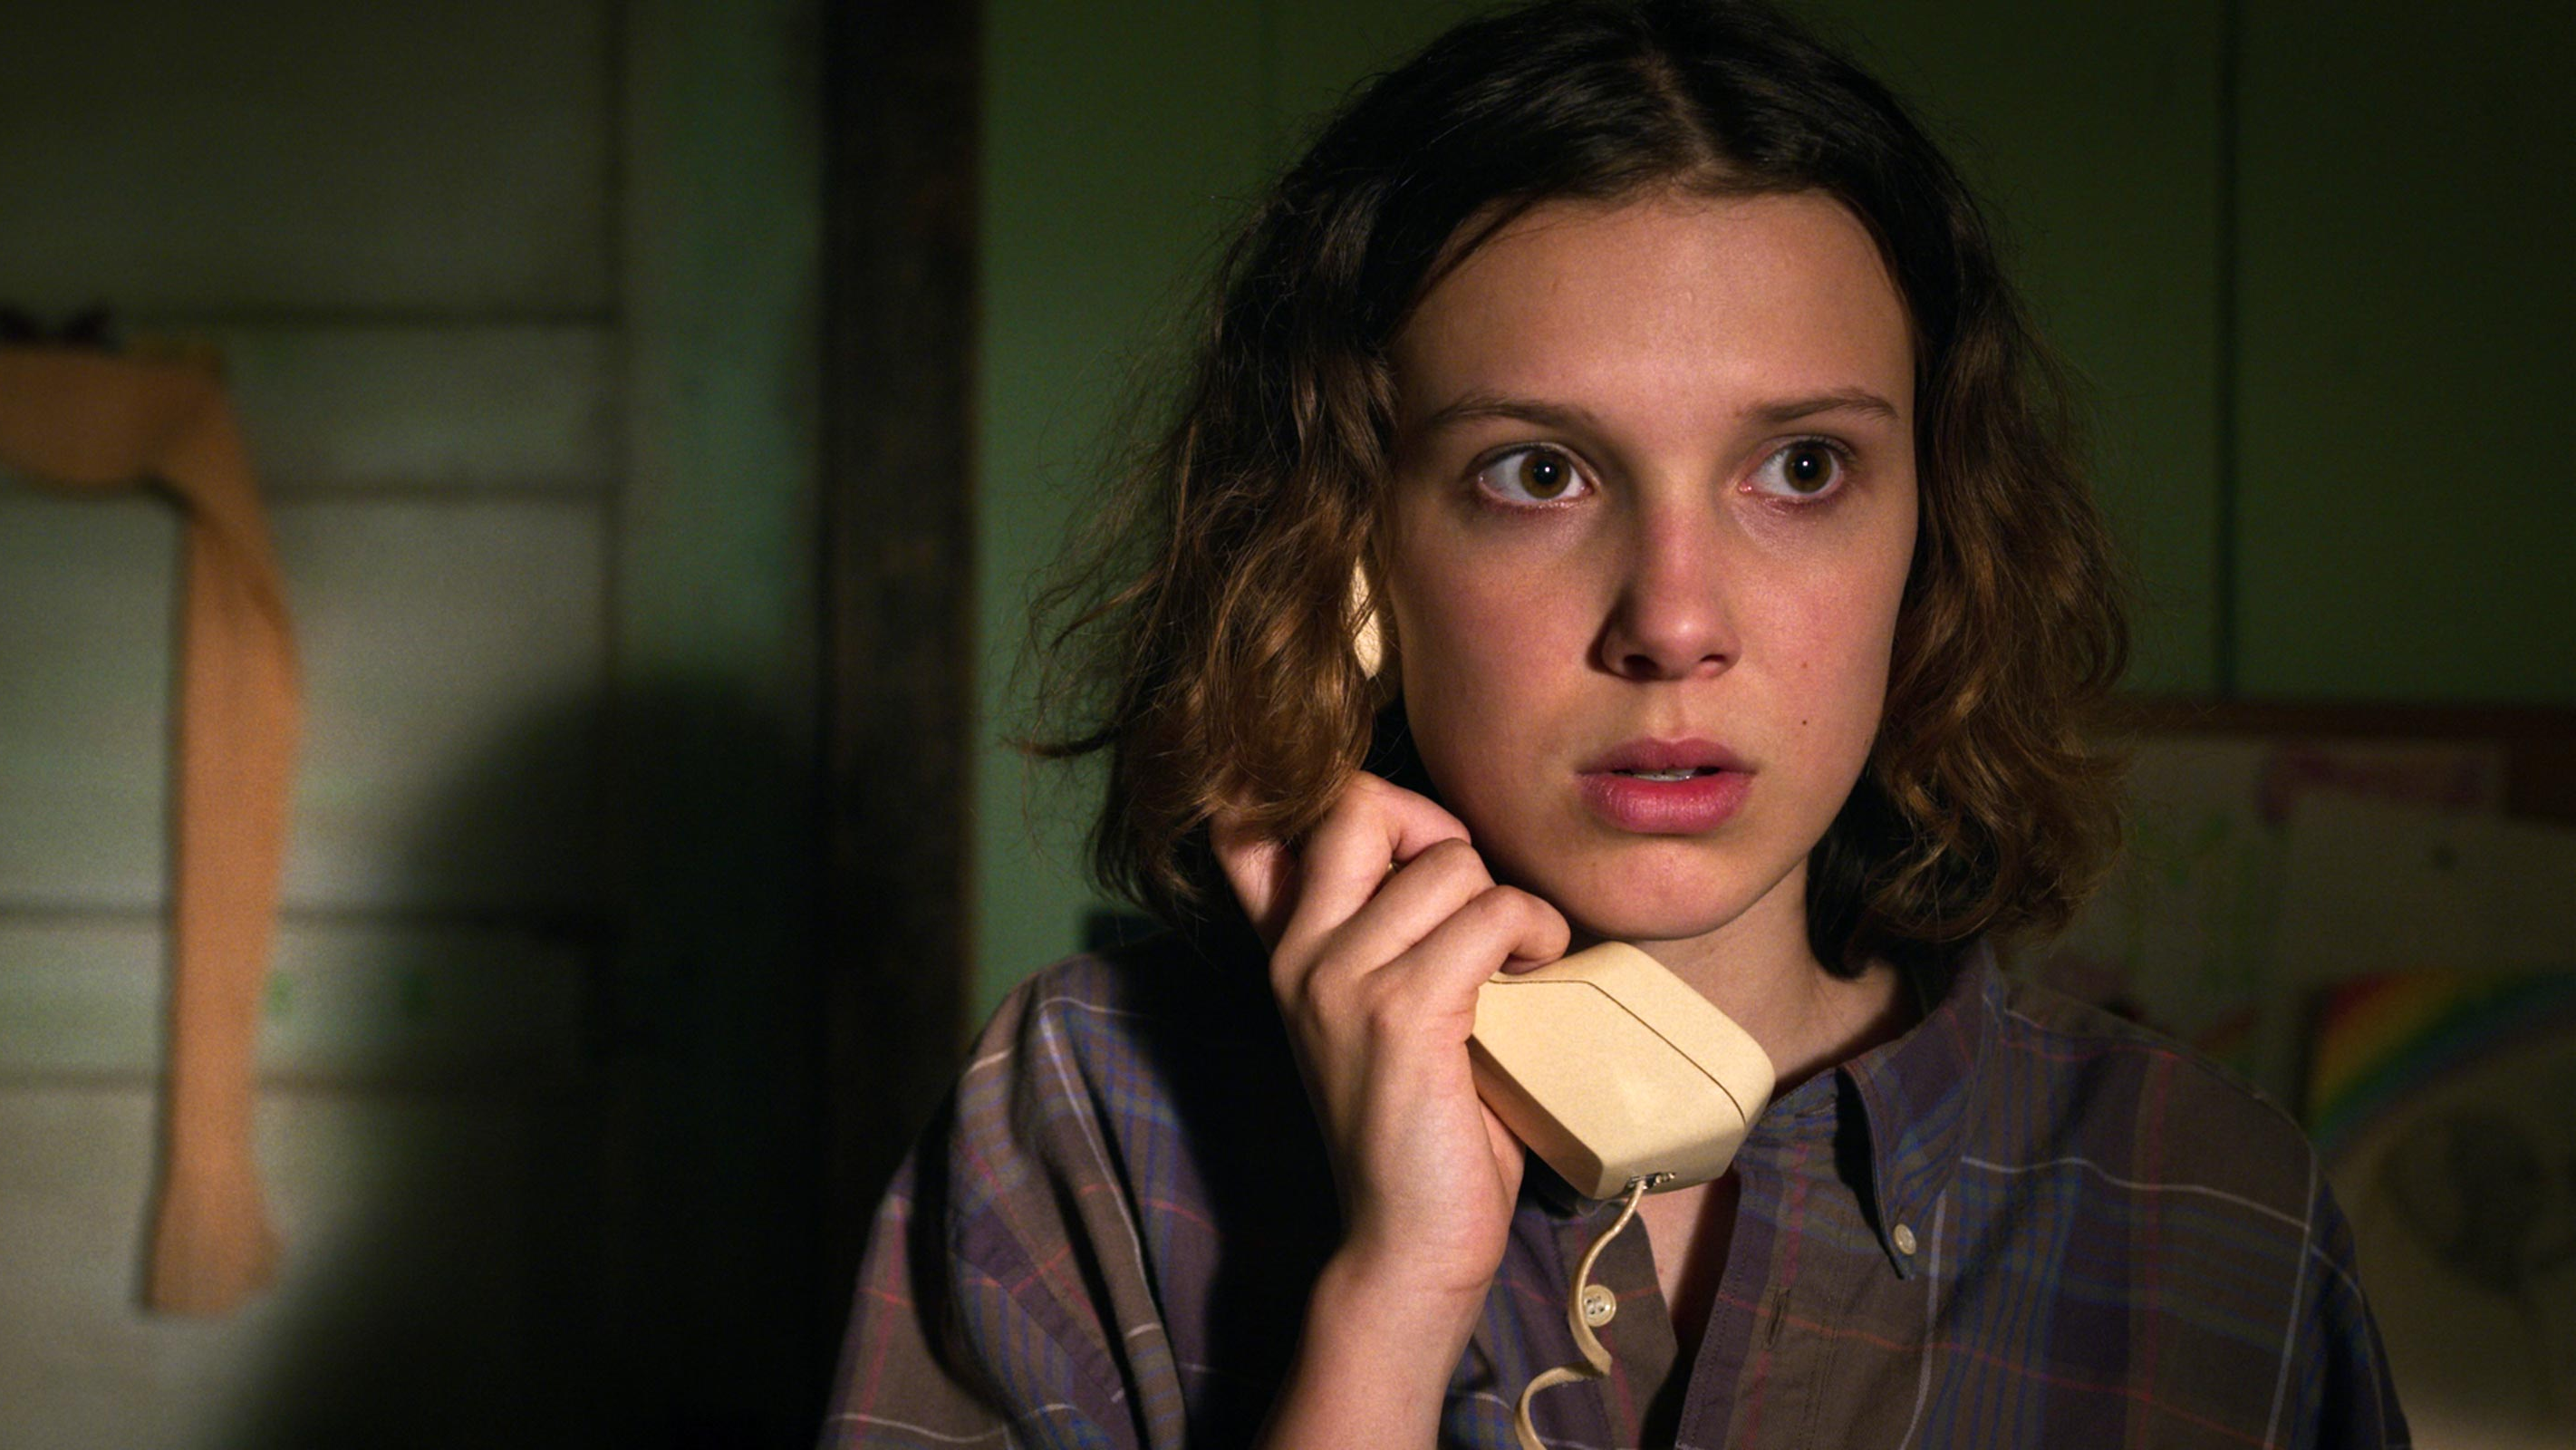 Millie Bobby Brown Explains How She Filmed Her Most Emotional Moment In The Third Season Of Stranger Things